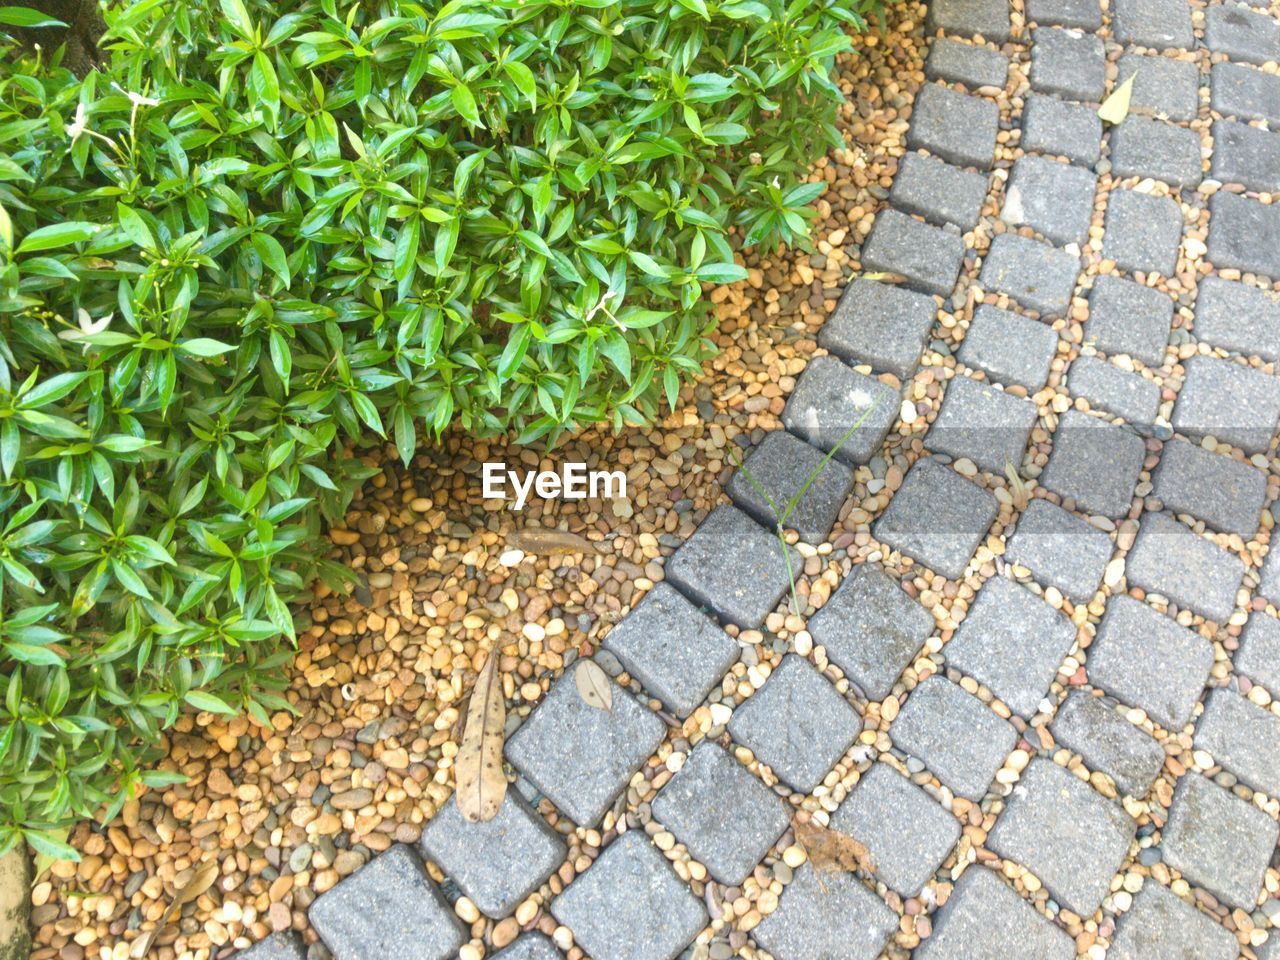 leaf, cobblestone, outdoors, day, nature, plant, growth, no people, close-up